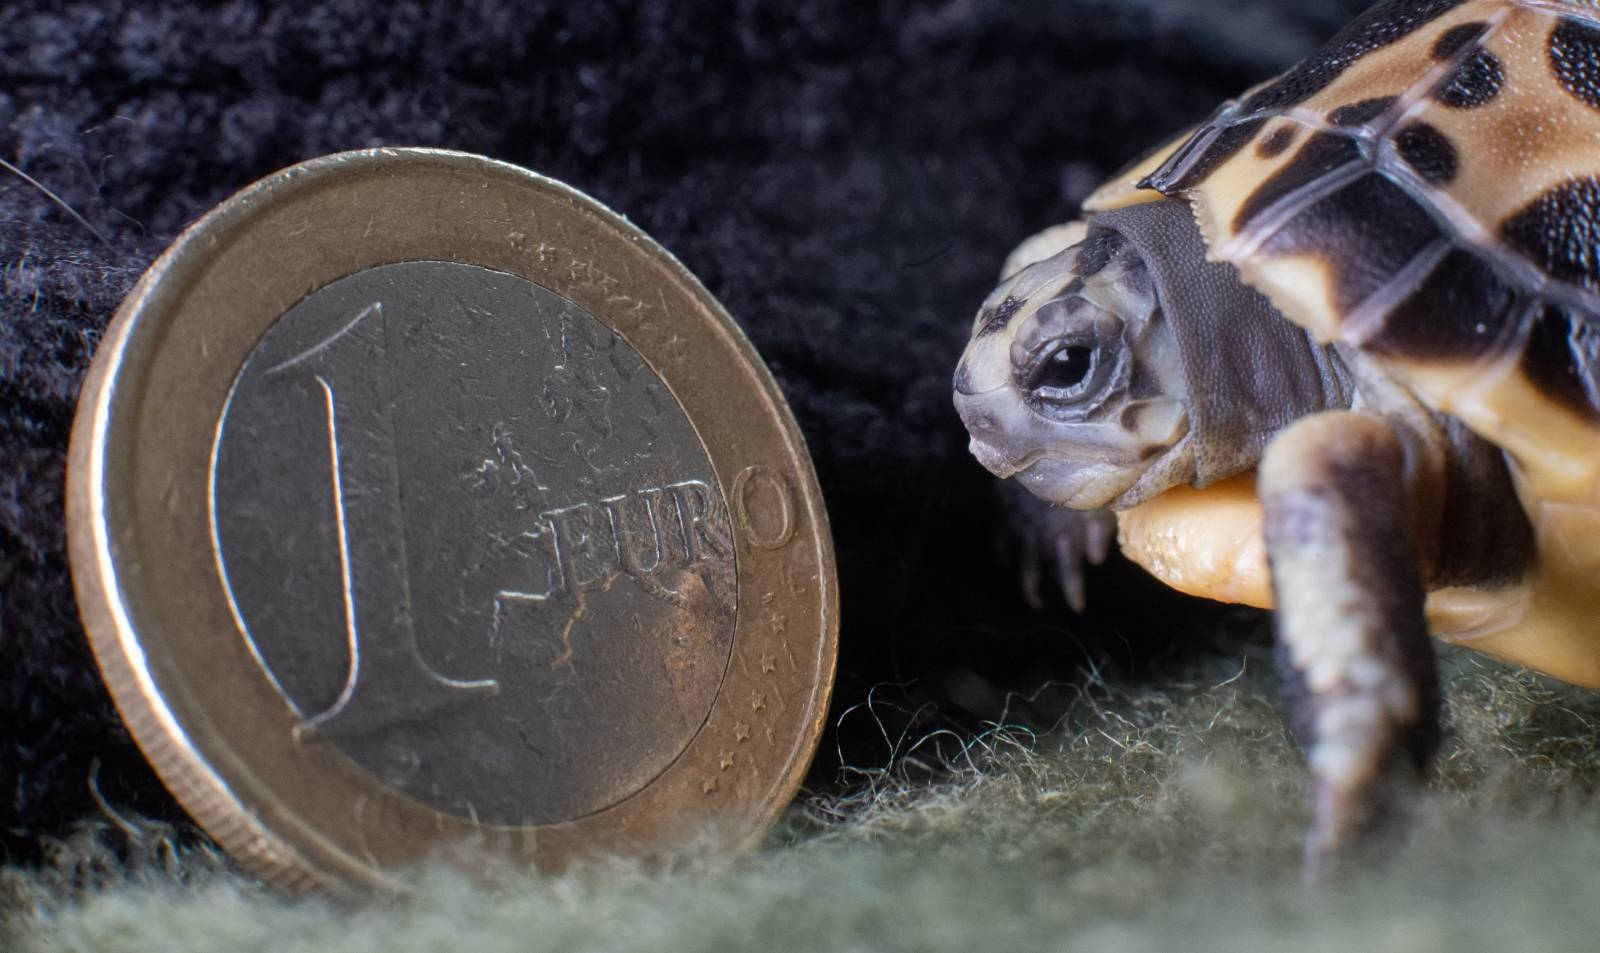 Madagascan spider turtle at Hannover Zoo